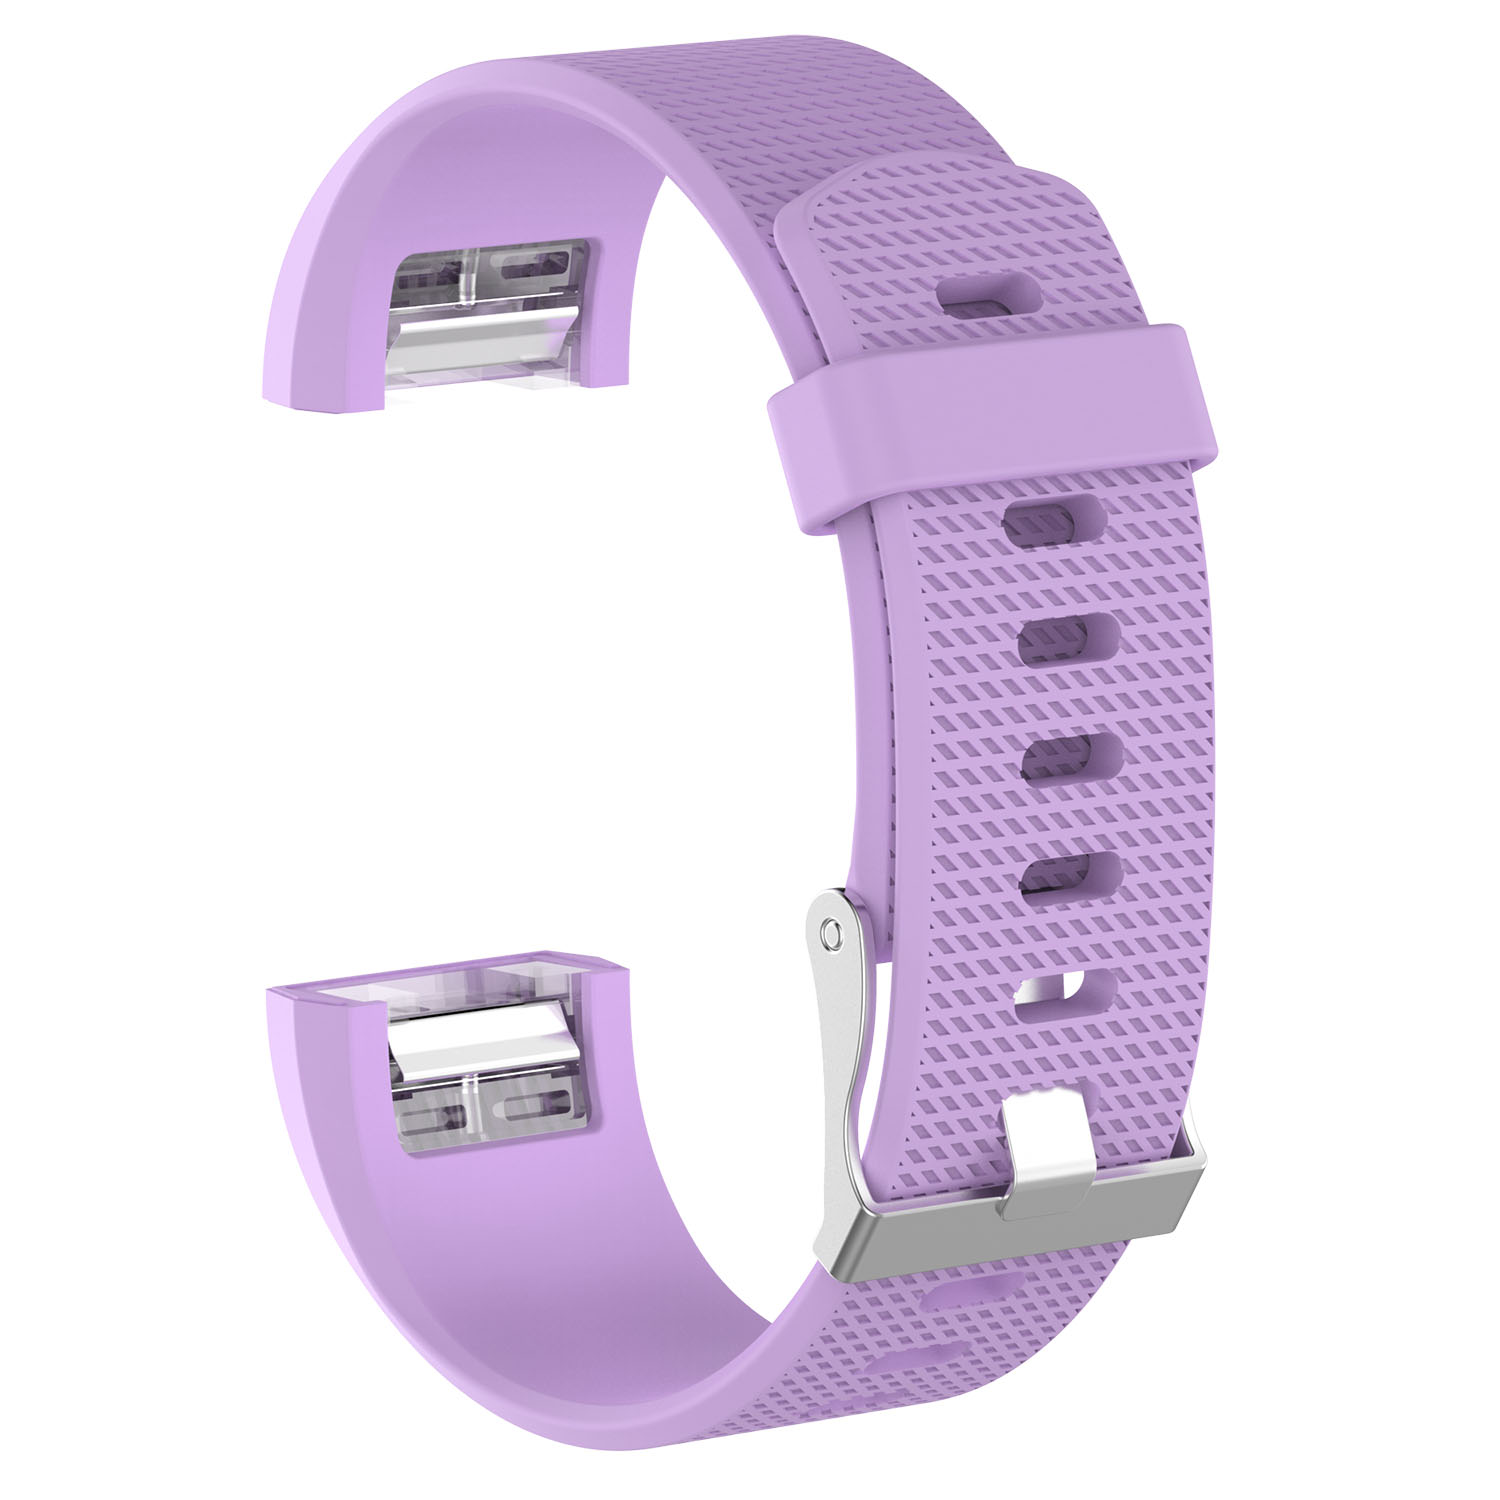 Replacement-Silicone-Wristband-Watch-Strap-Bands-Bracelet-For-Fitbit-Charge-2 thumbnail 59